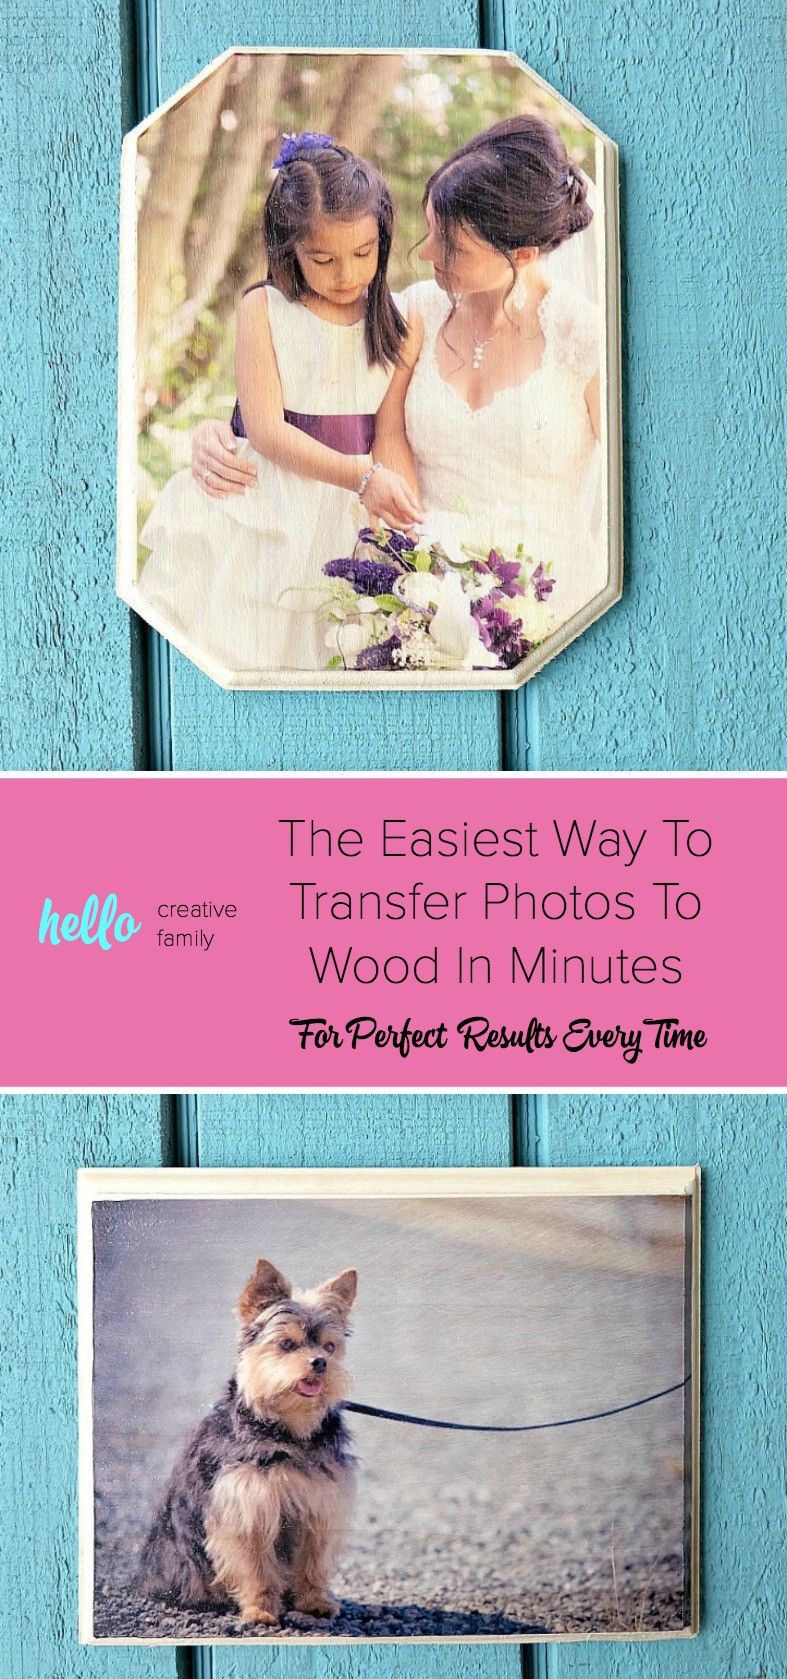 how to transfer photos to wood using modge podge or acrylic gel medium, easy DIY home decor photo transfers, wood signs